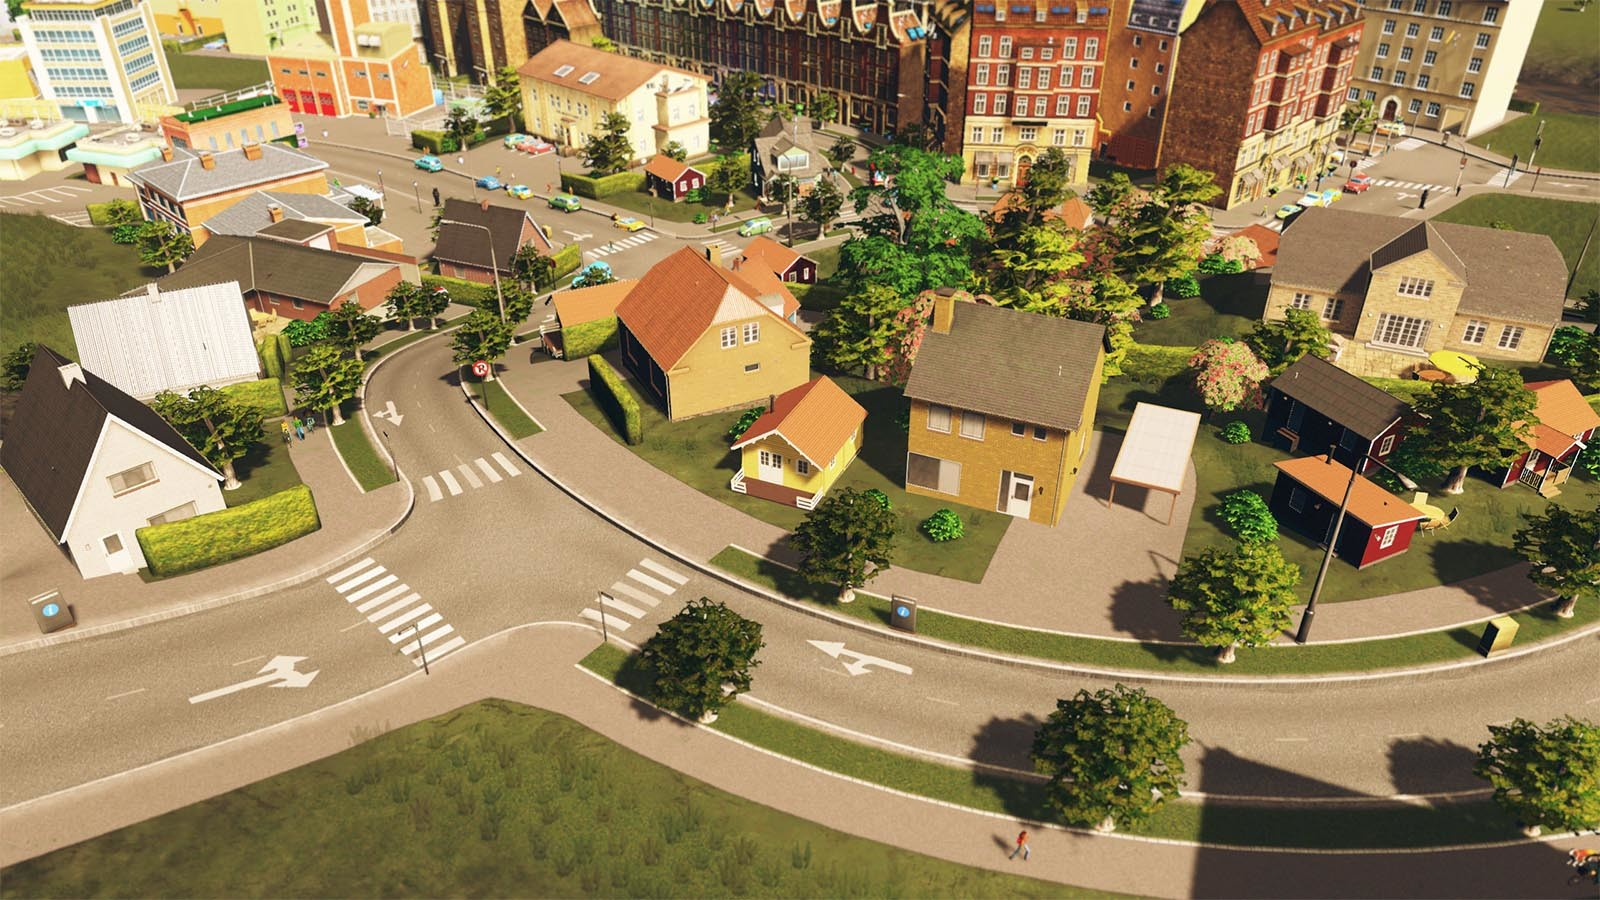 Cities: Skylines - European Suburbia Content Creator Pack [Steam CD Key]  for PC, Mac and Linux - Buy now